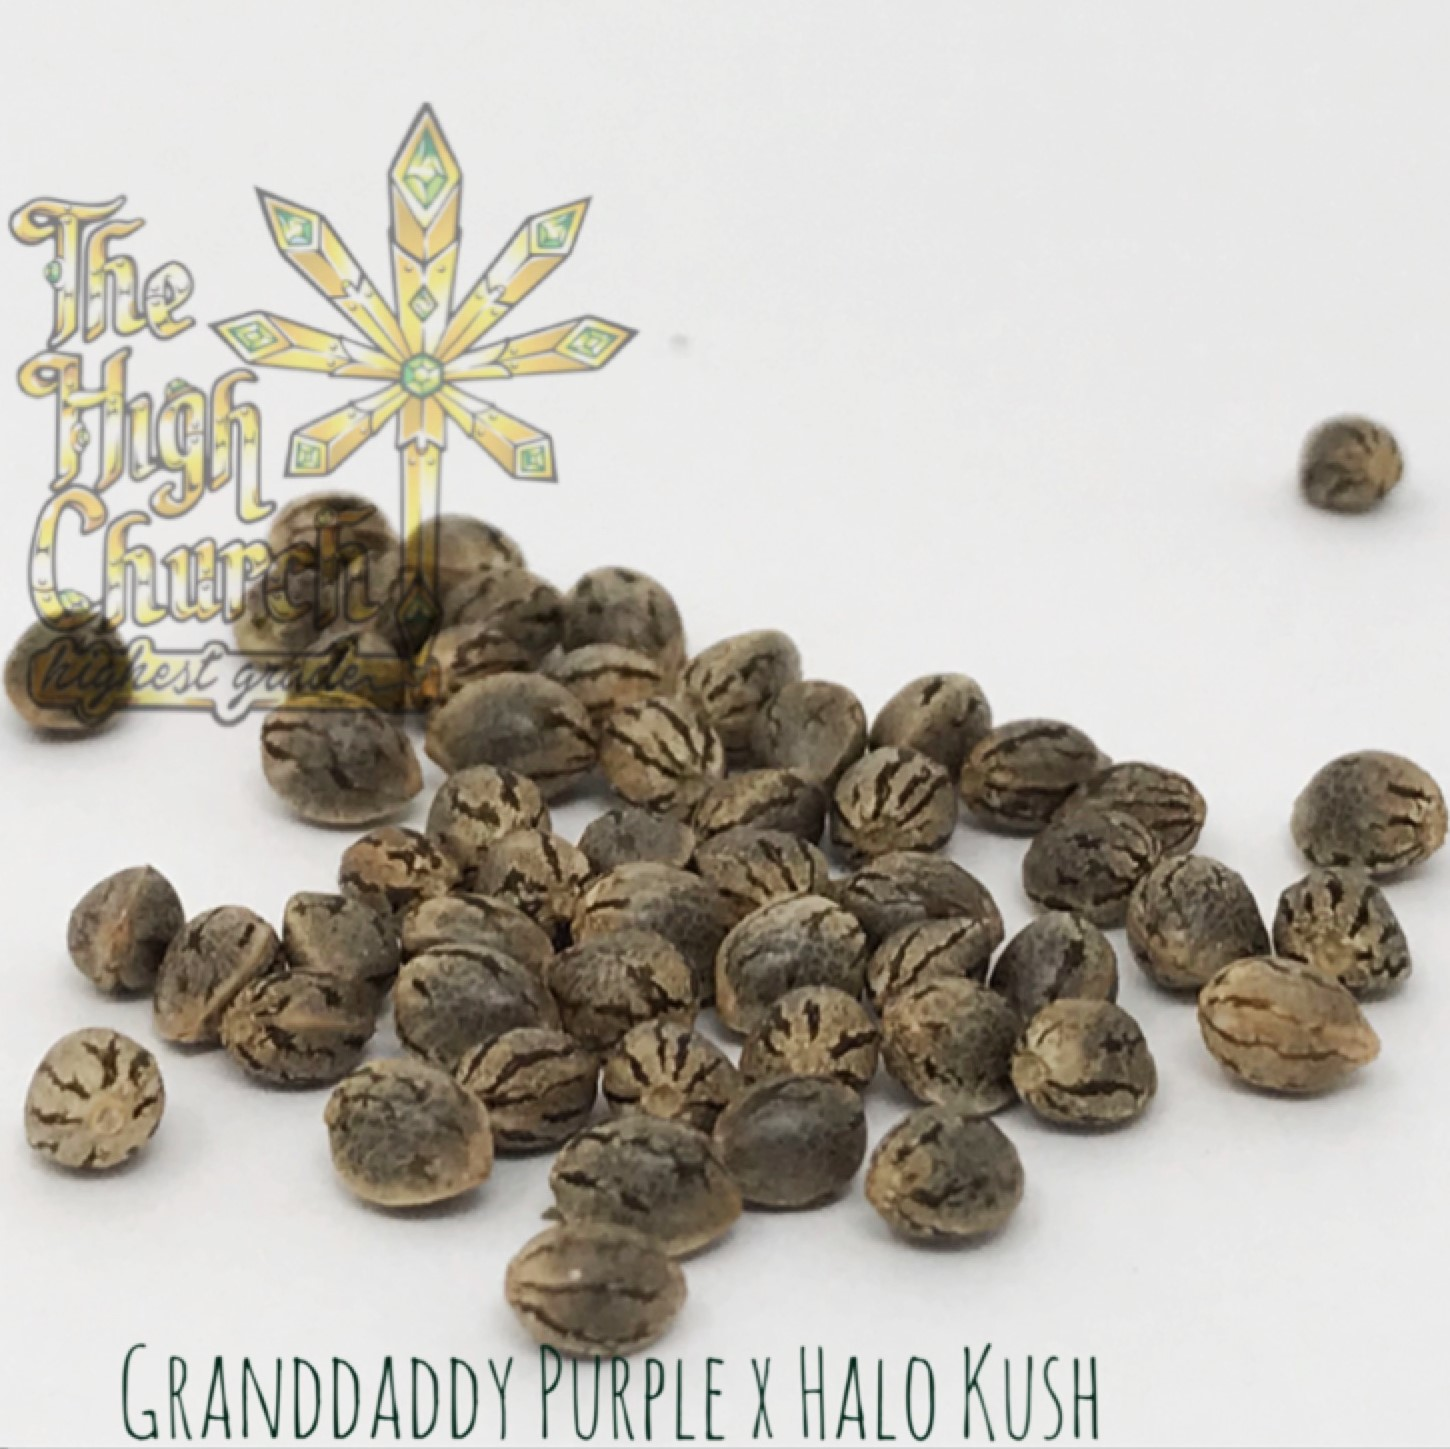 Granddaddy's Halo Seeds